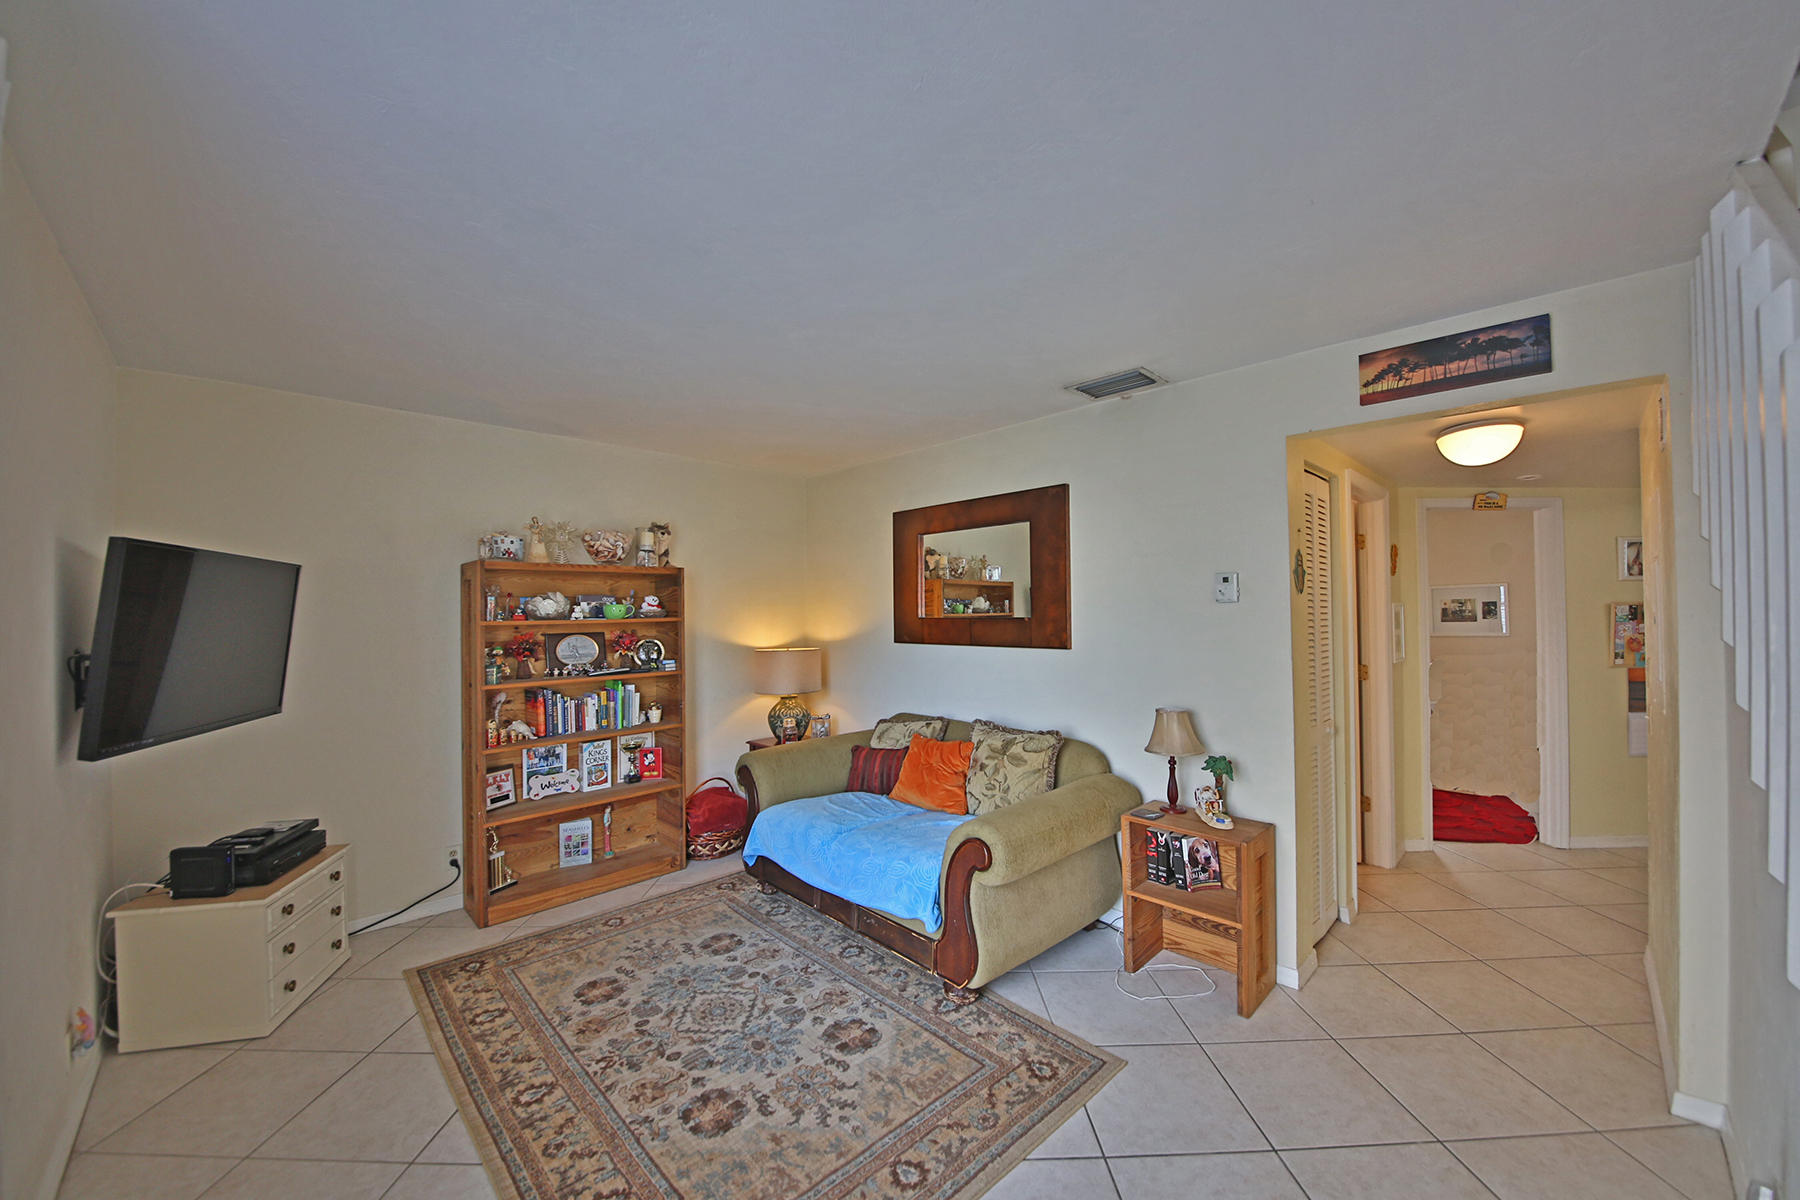 Condominium for Sale at MARCO ISLAND - ISLAND VILLAGE 530 Tallwood St 701 Marco Island, Florida 34145 United States